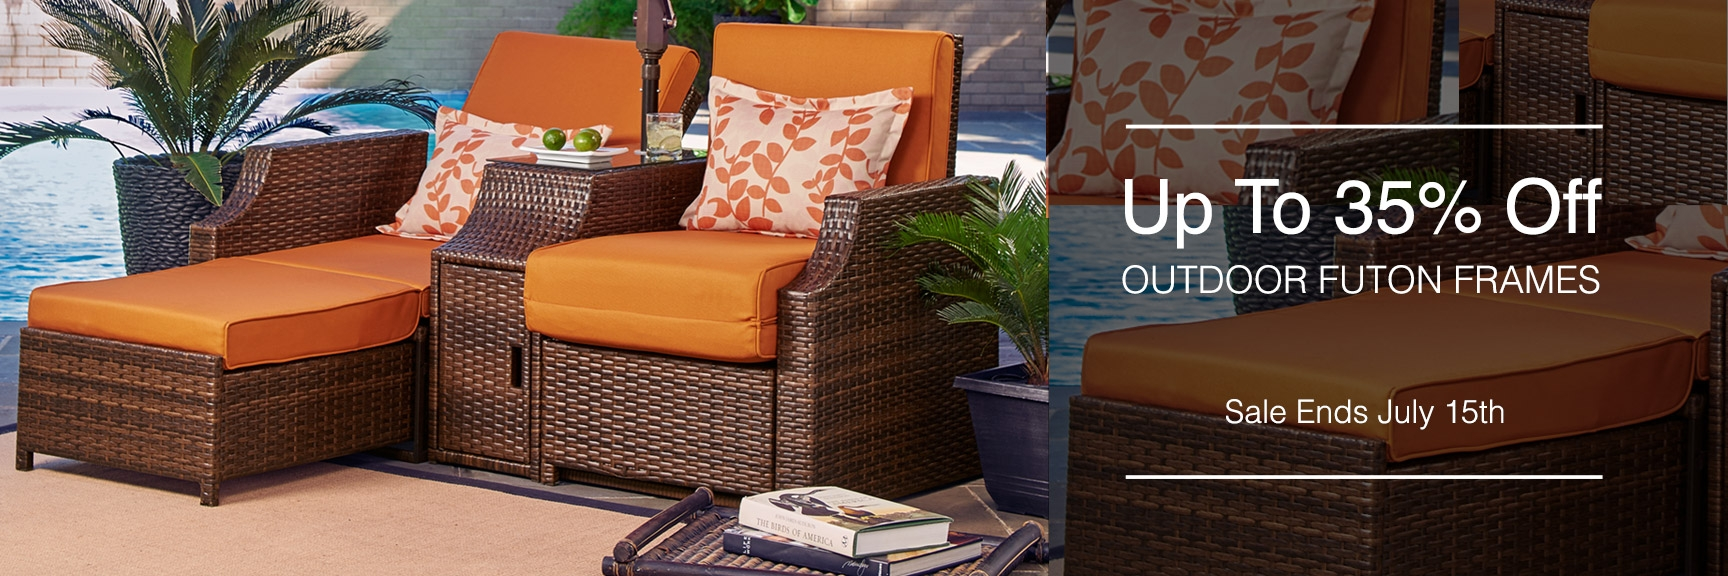 Lovely Outdoor Futon Frames